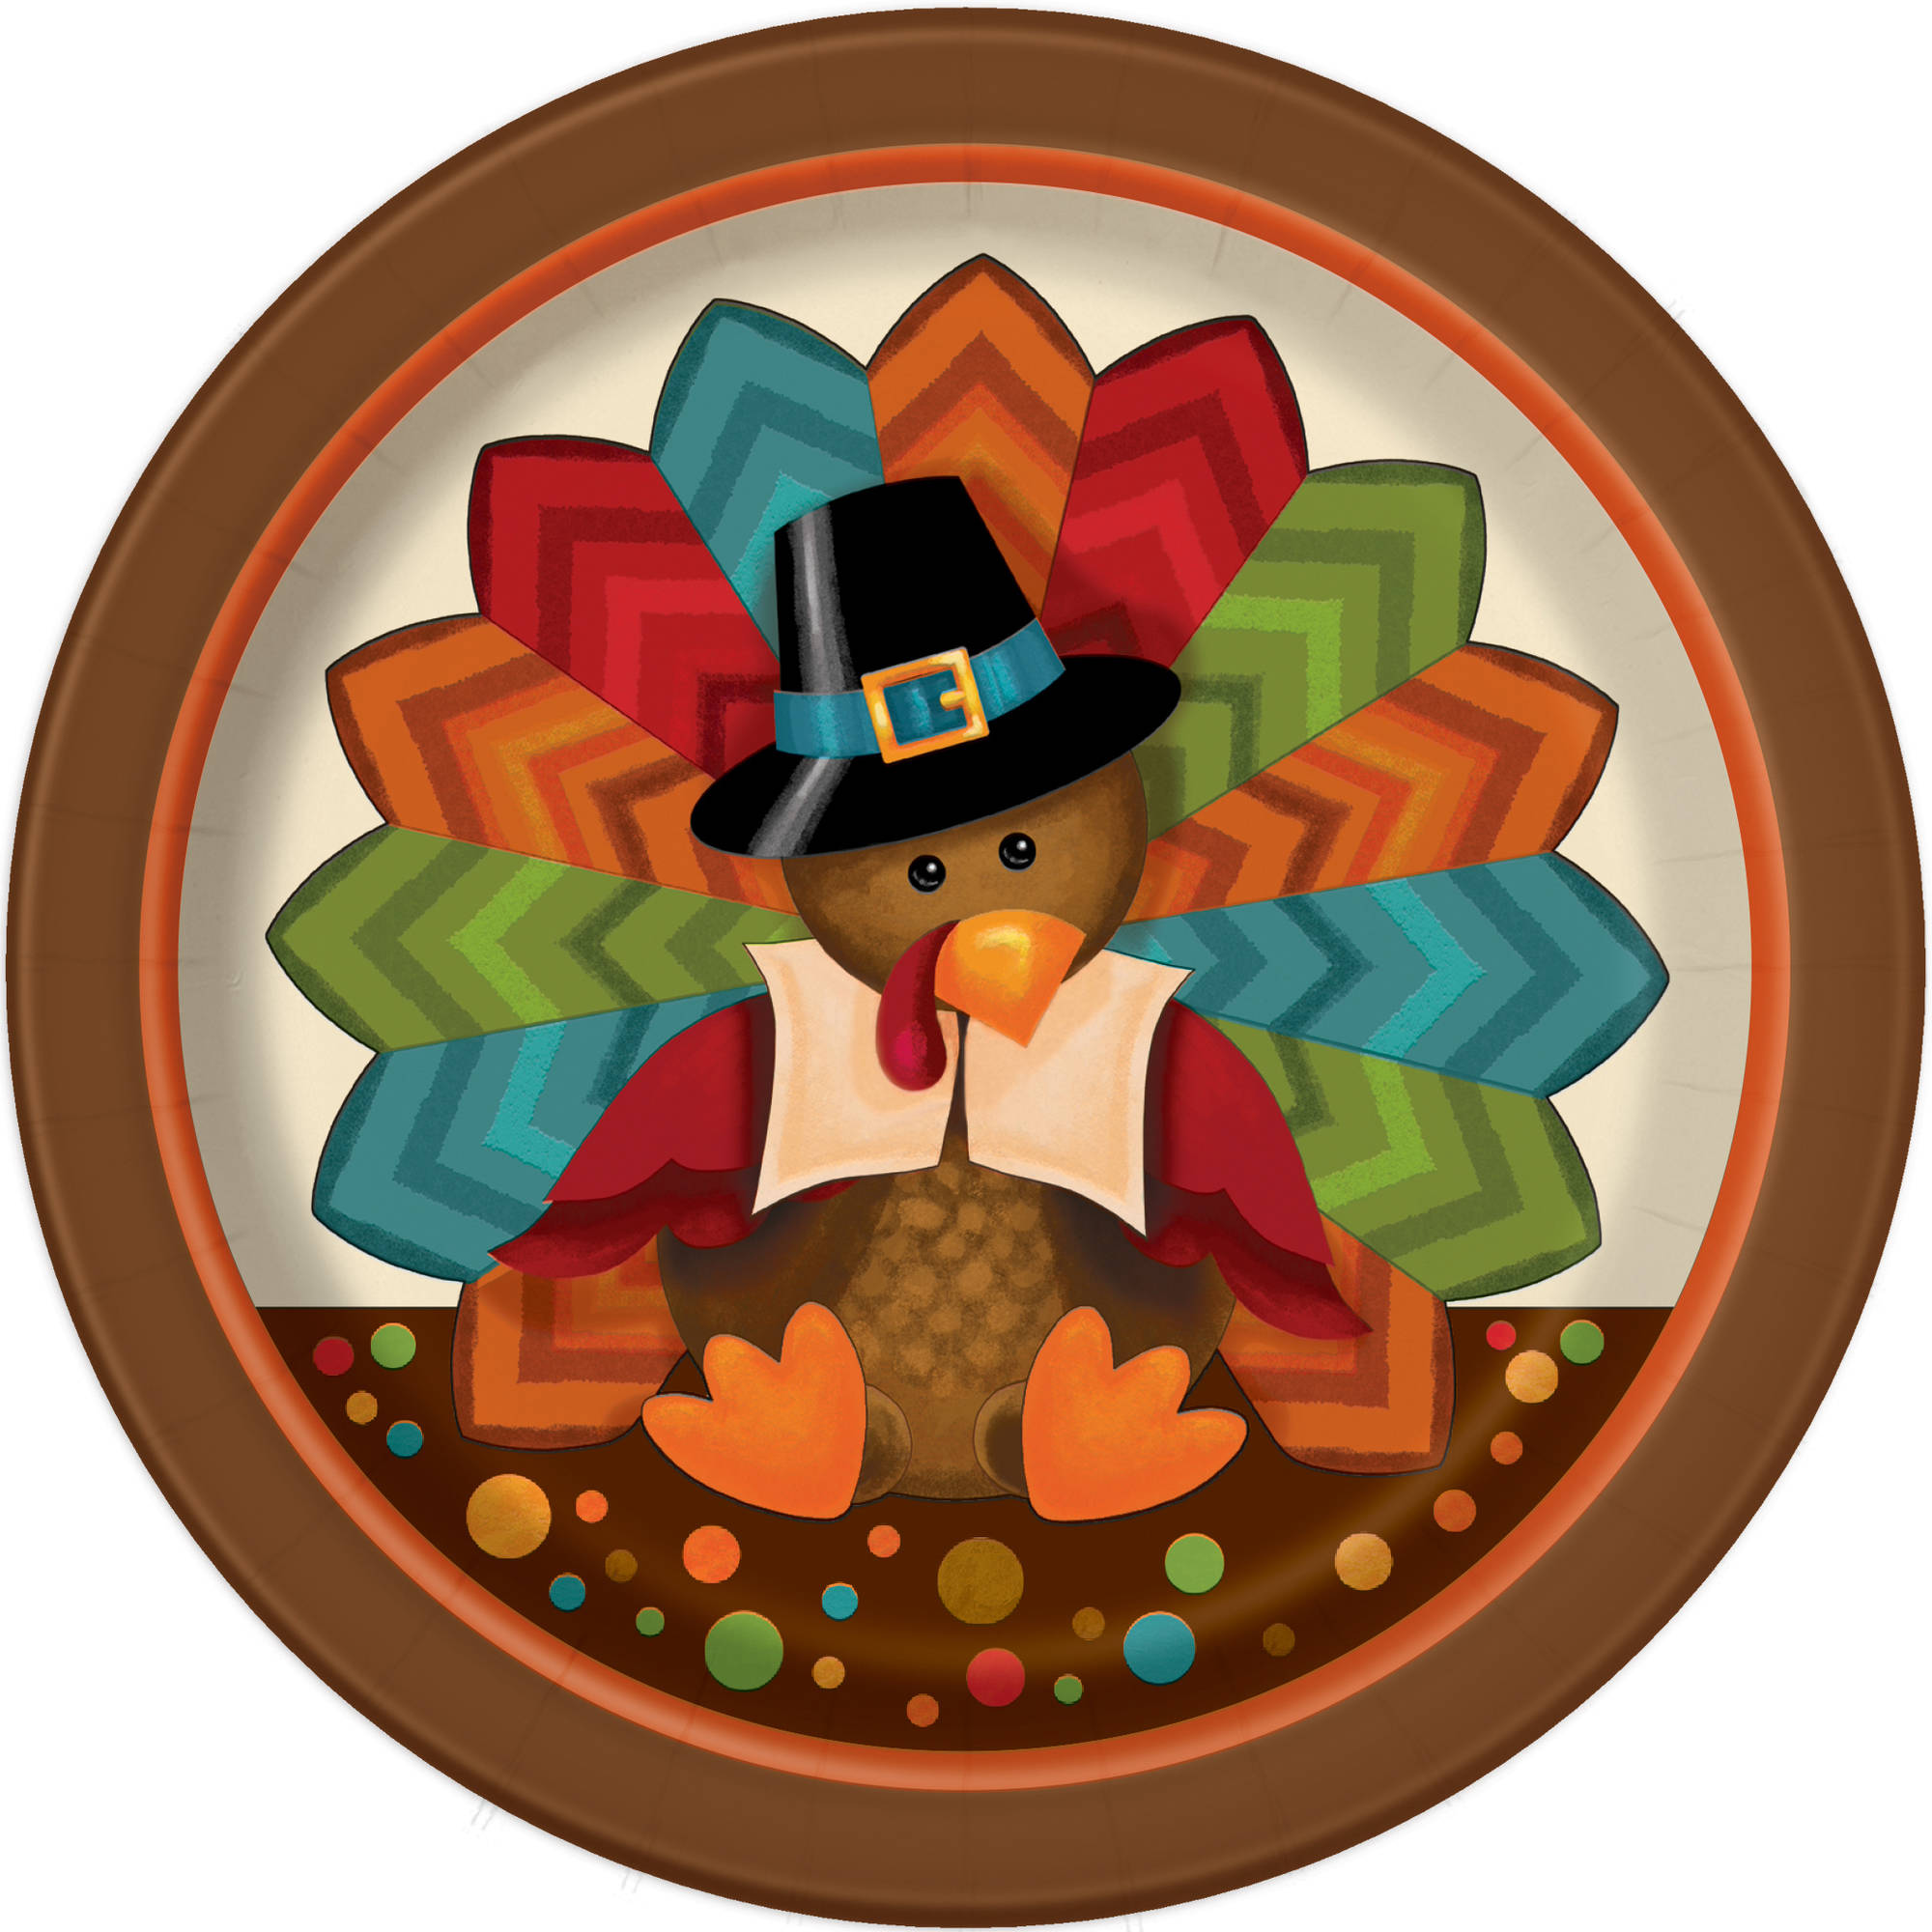 Cute Turkey Thanksgiving Paper Plates 7 in 8ct  sc 1 st  Walmart.com & Cute Turkey Thanksgiving Paper Plates 7 in 8ct - Walmart.com